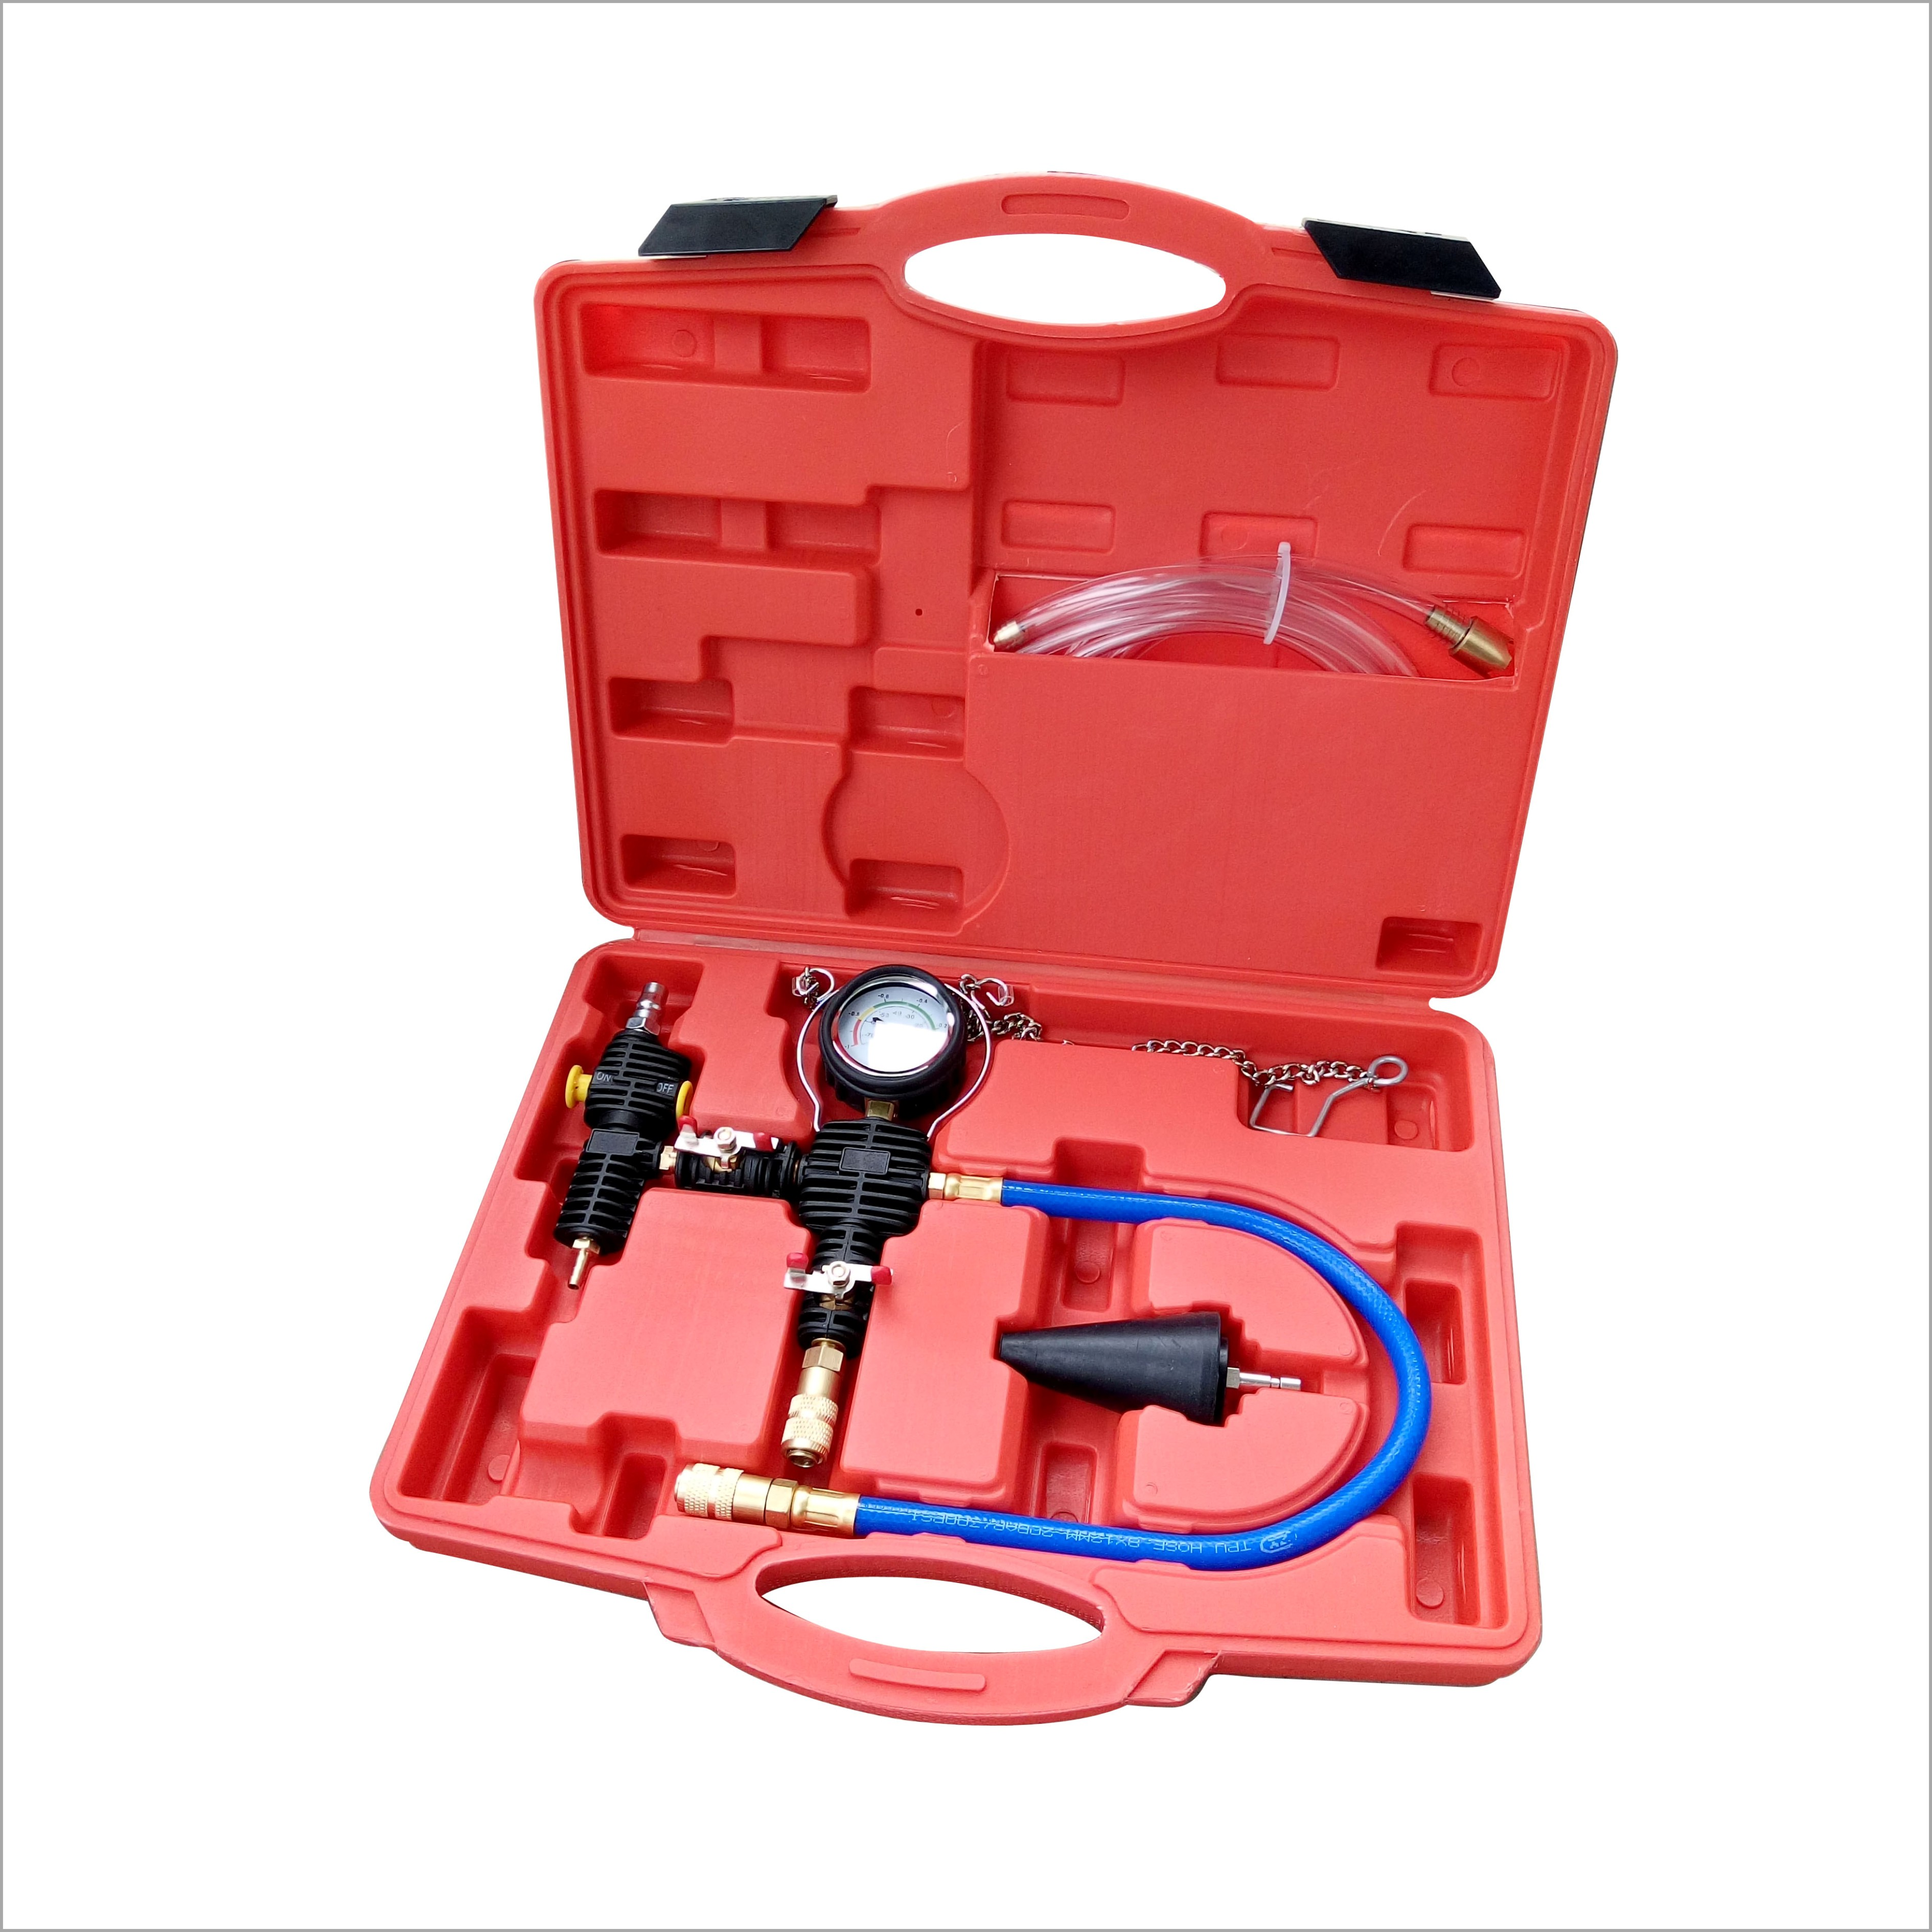 ФОТО Cooling System Vacuum Purge And Refill Car Van For Radiator Kit